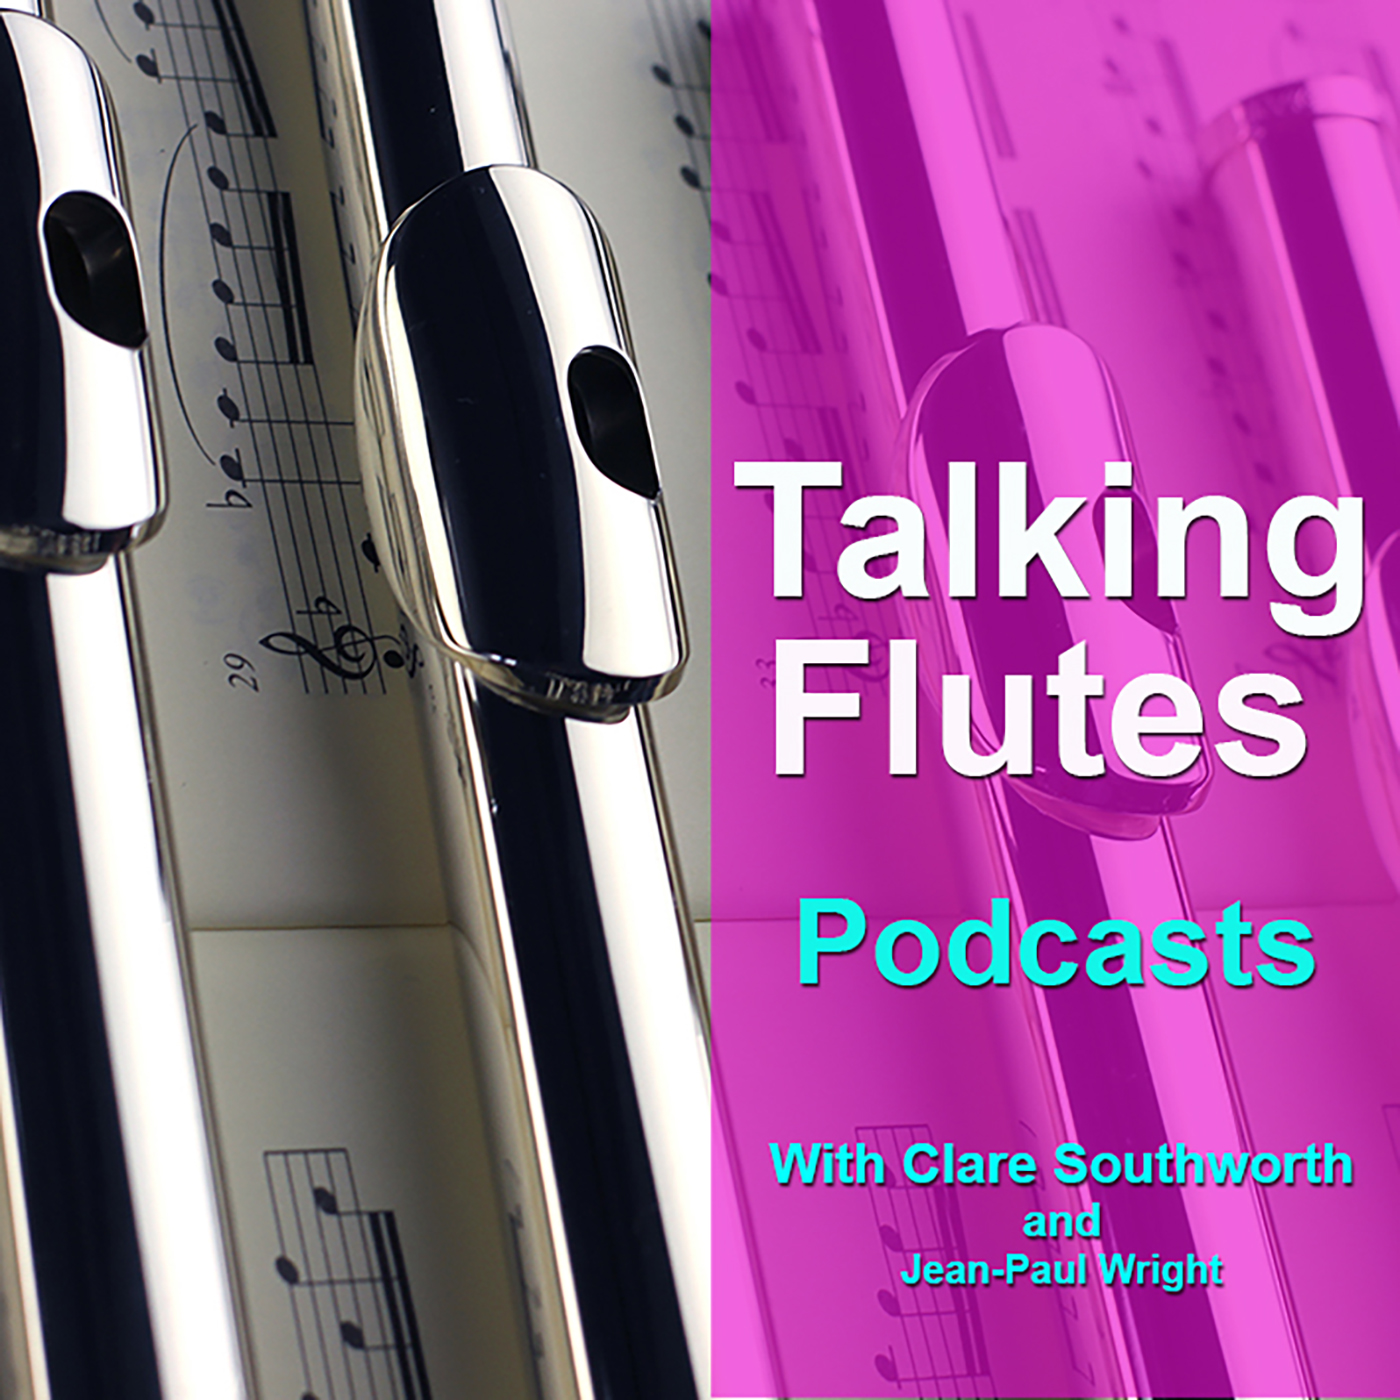 Talking Flutes!